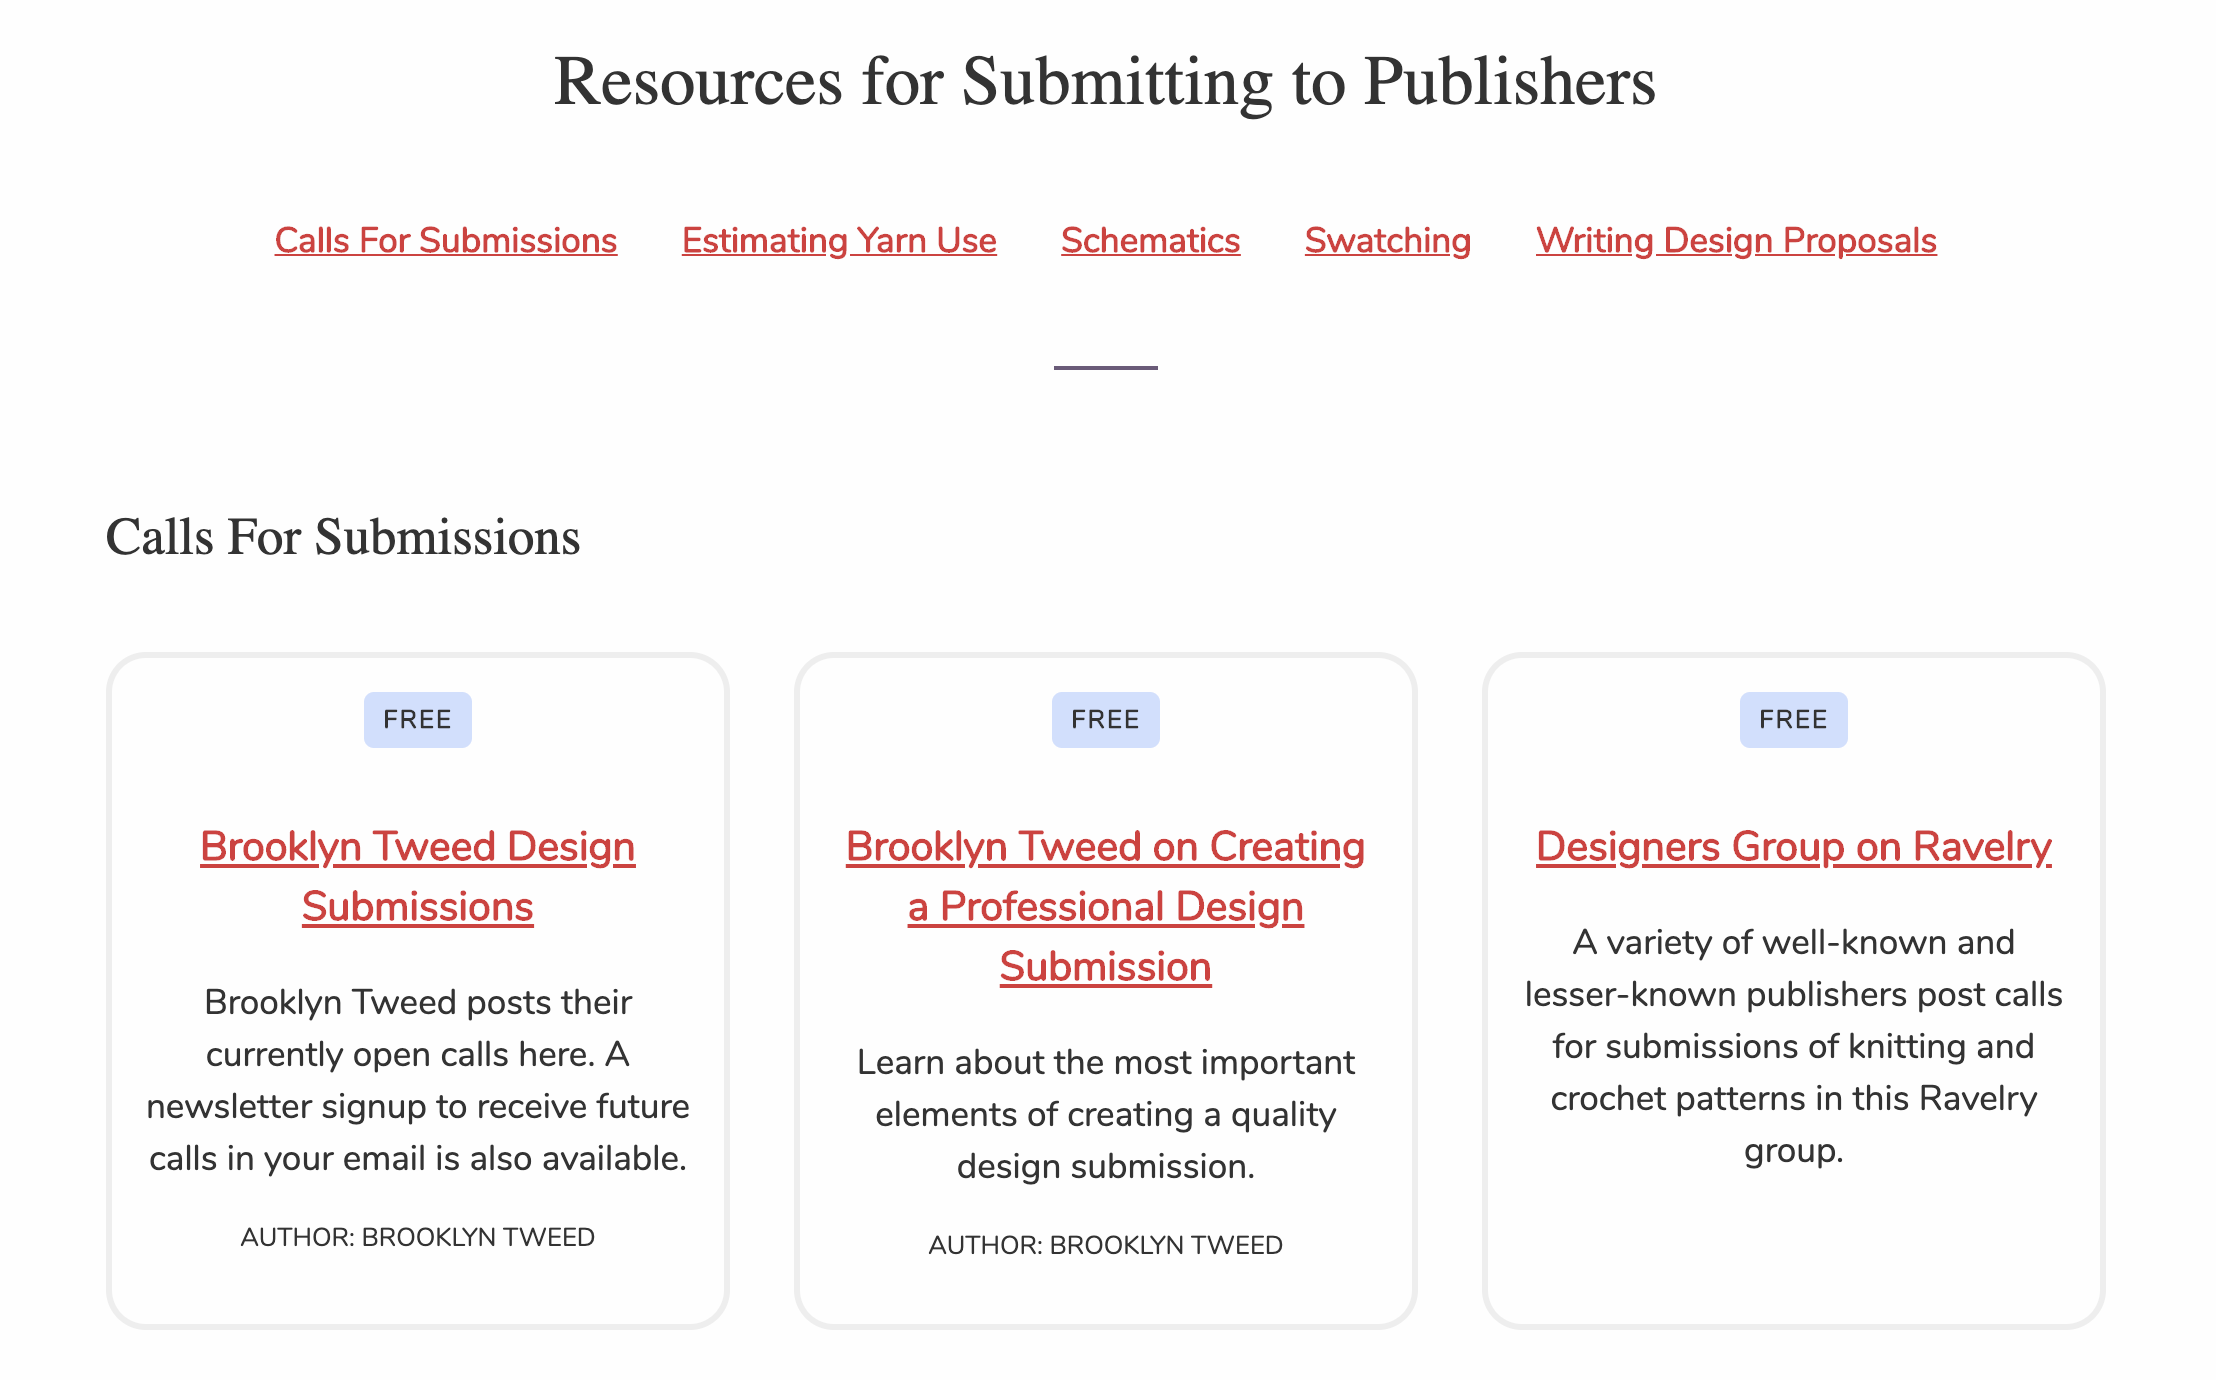 The Submitting to Publishers resources page with the following topics: Calls For Submissions, Estimating Yarn Use, Schematics, Swatching, Writing Design Proposals. There is a grid of resource cards below the topics list.